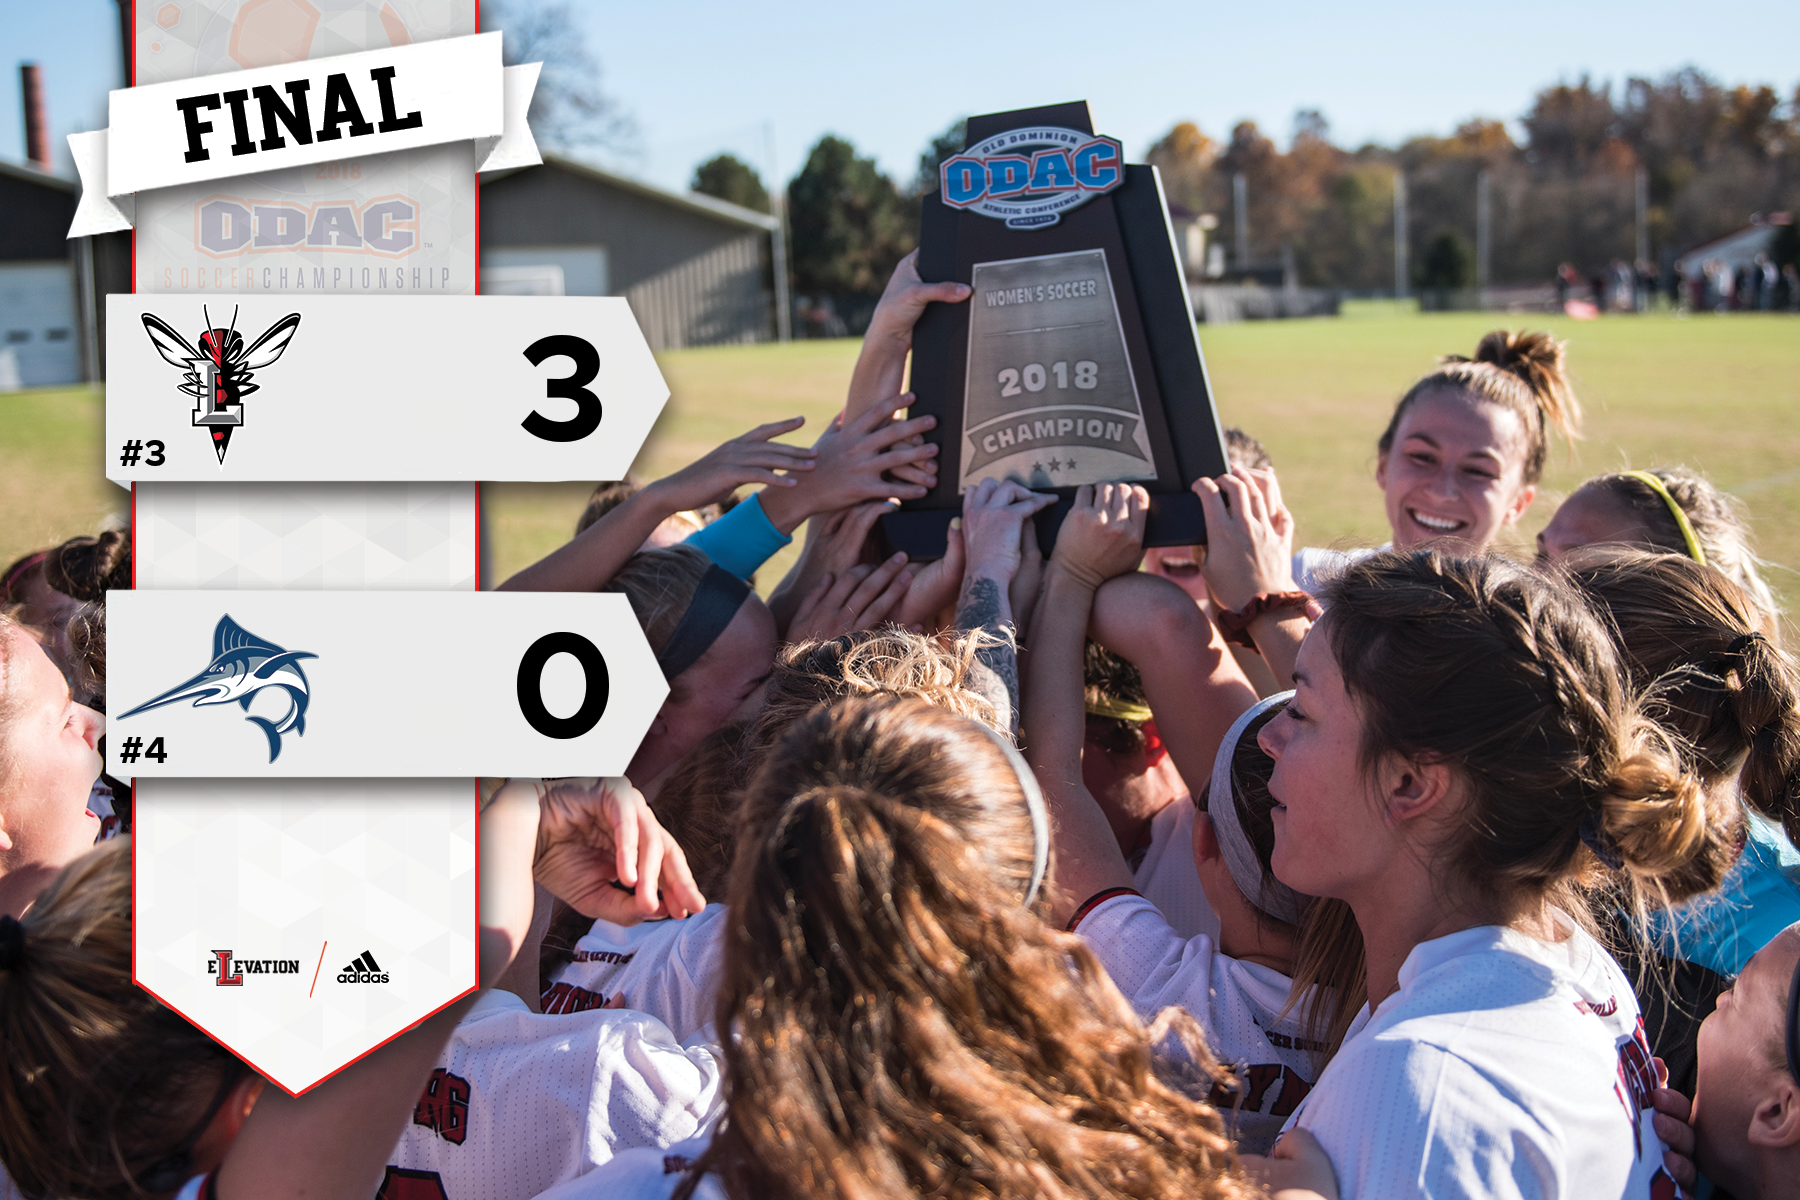 Women's soccer team hoists the ODAC championship trophy.